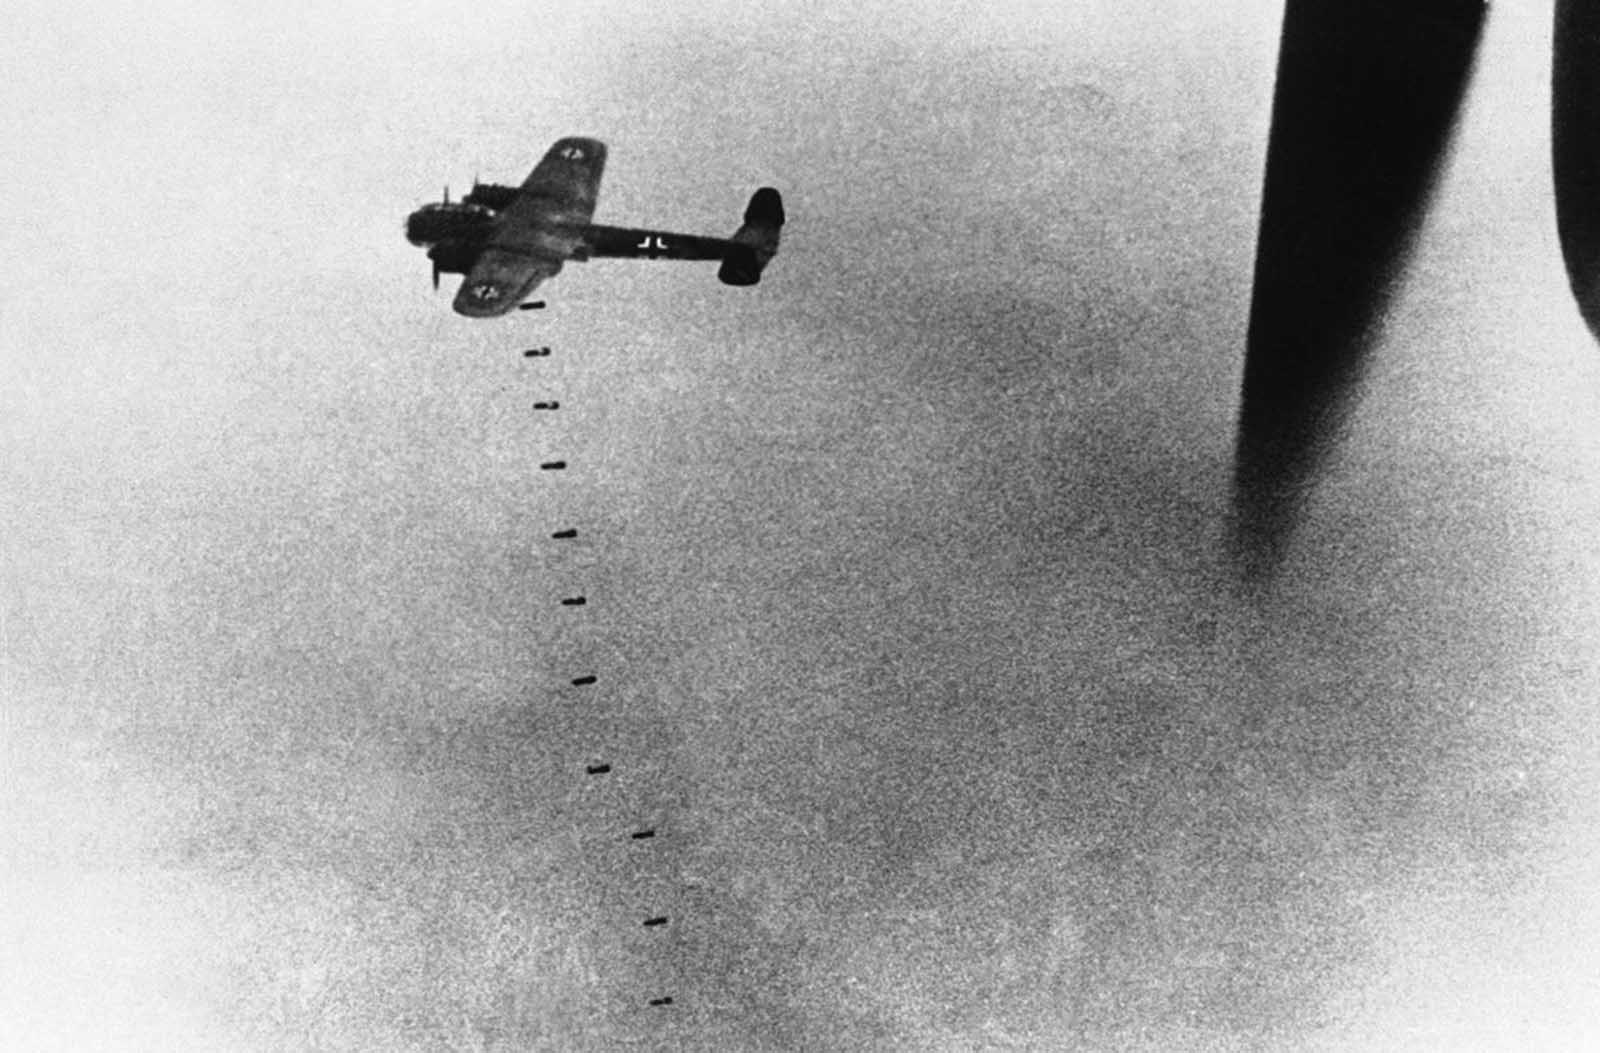 A German aircraft drops its load of bombs above England, during an attack on September 20, 1940.